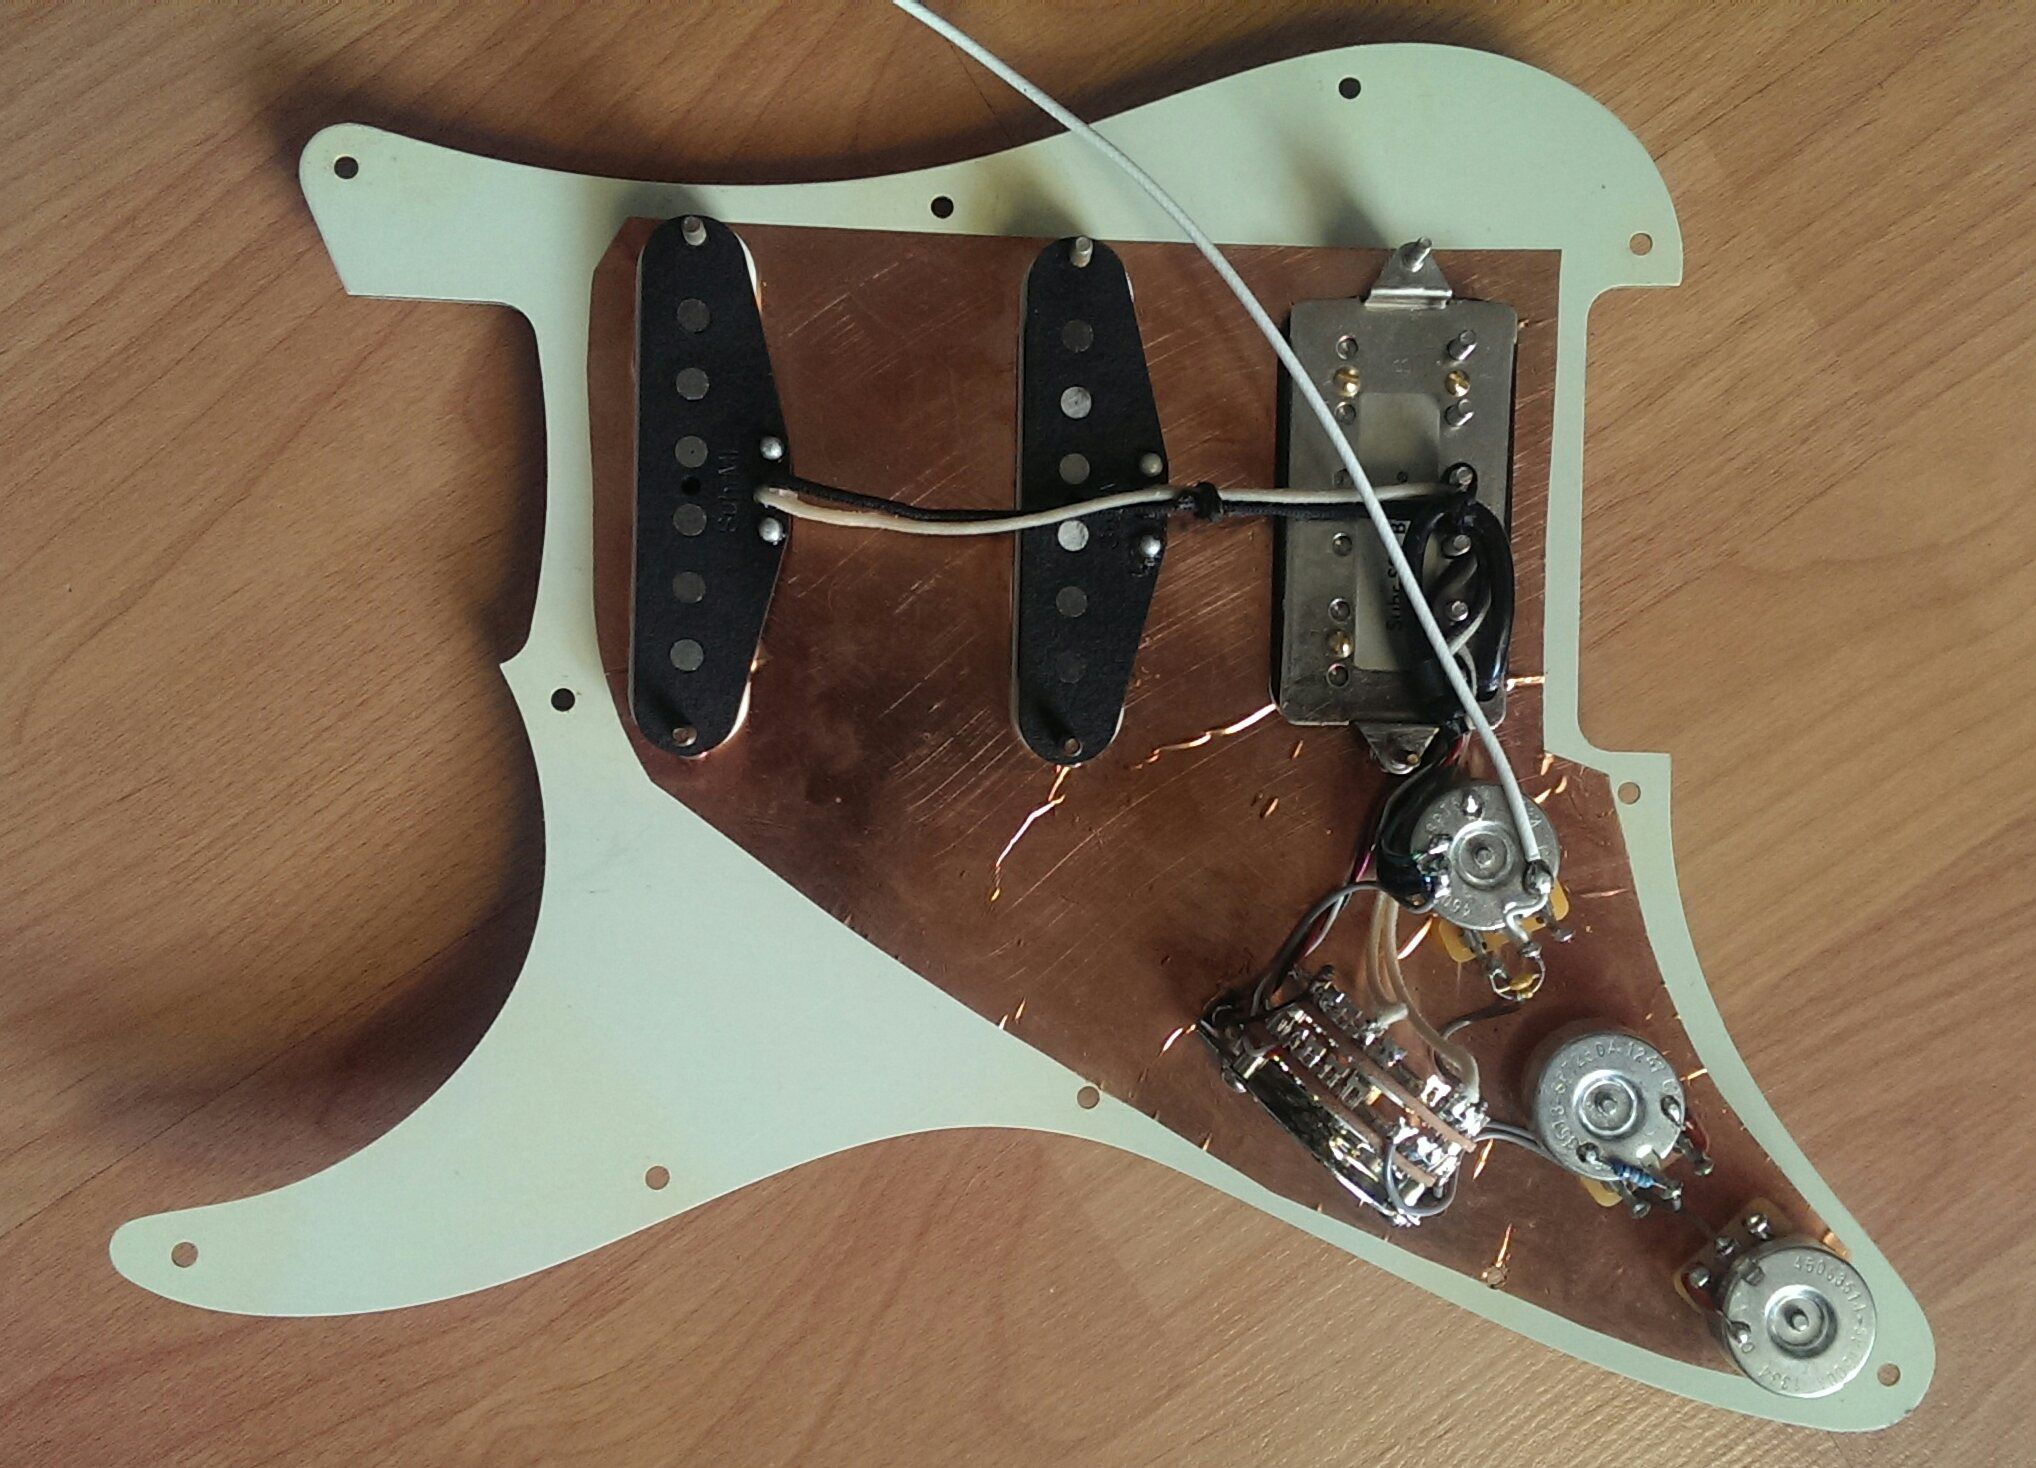 Suhr Pickup Wiring Just Another Data Pick Up Strat Diagram Sold Classic Antique Loaded Pickguard Mint Green The Gear Gibson